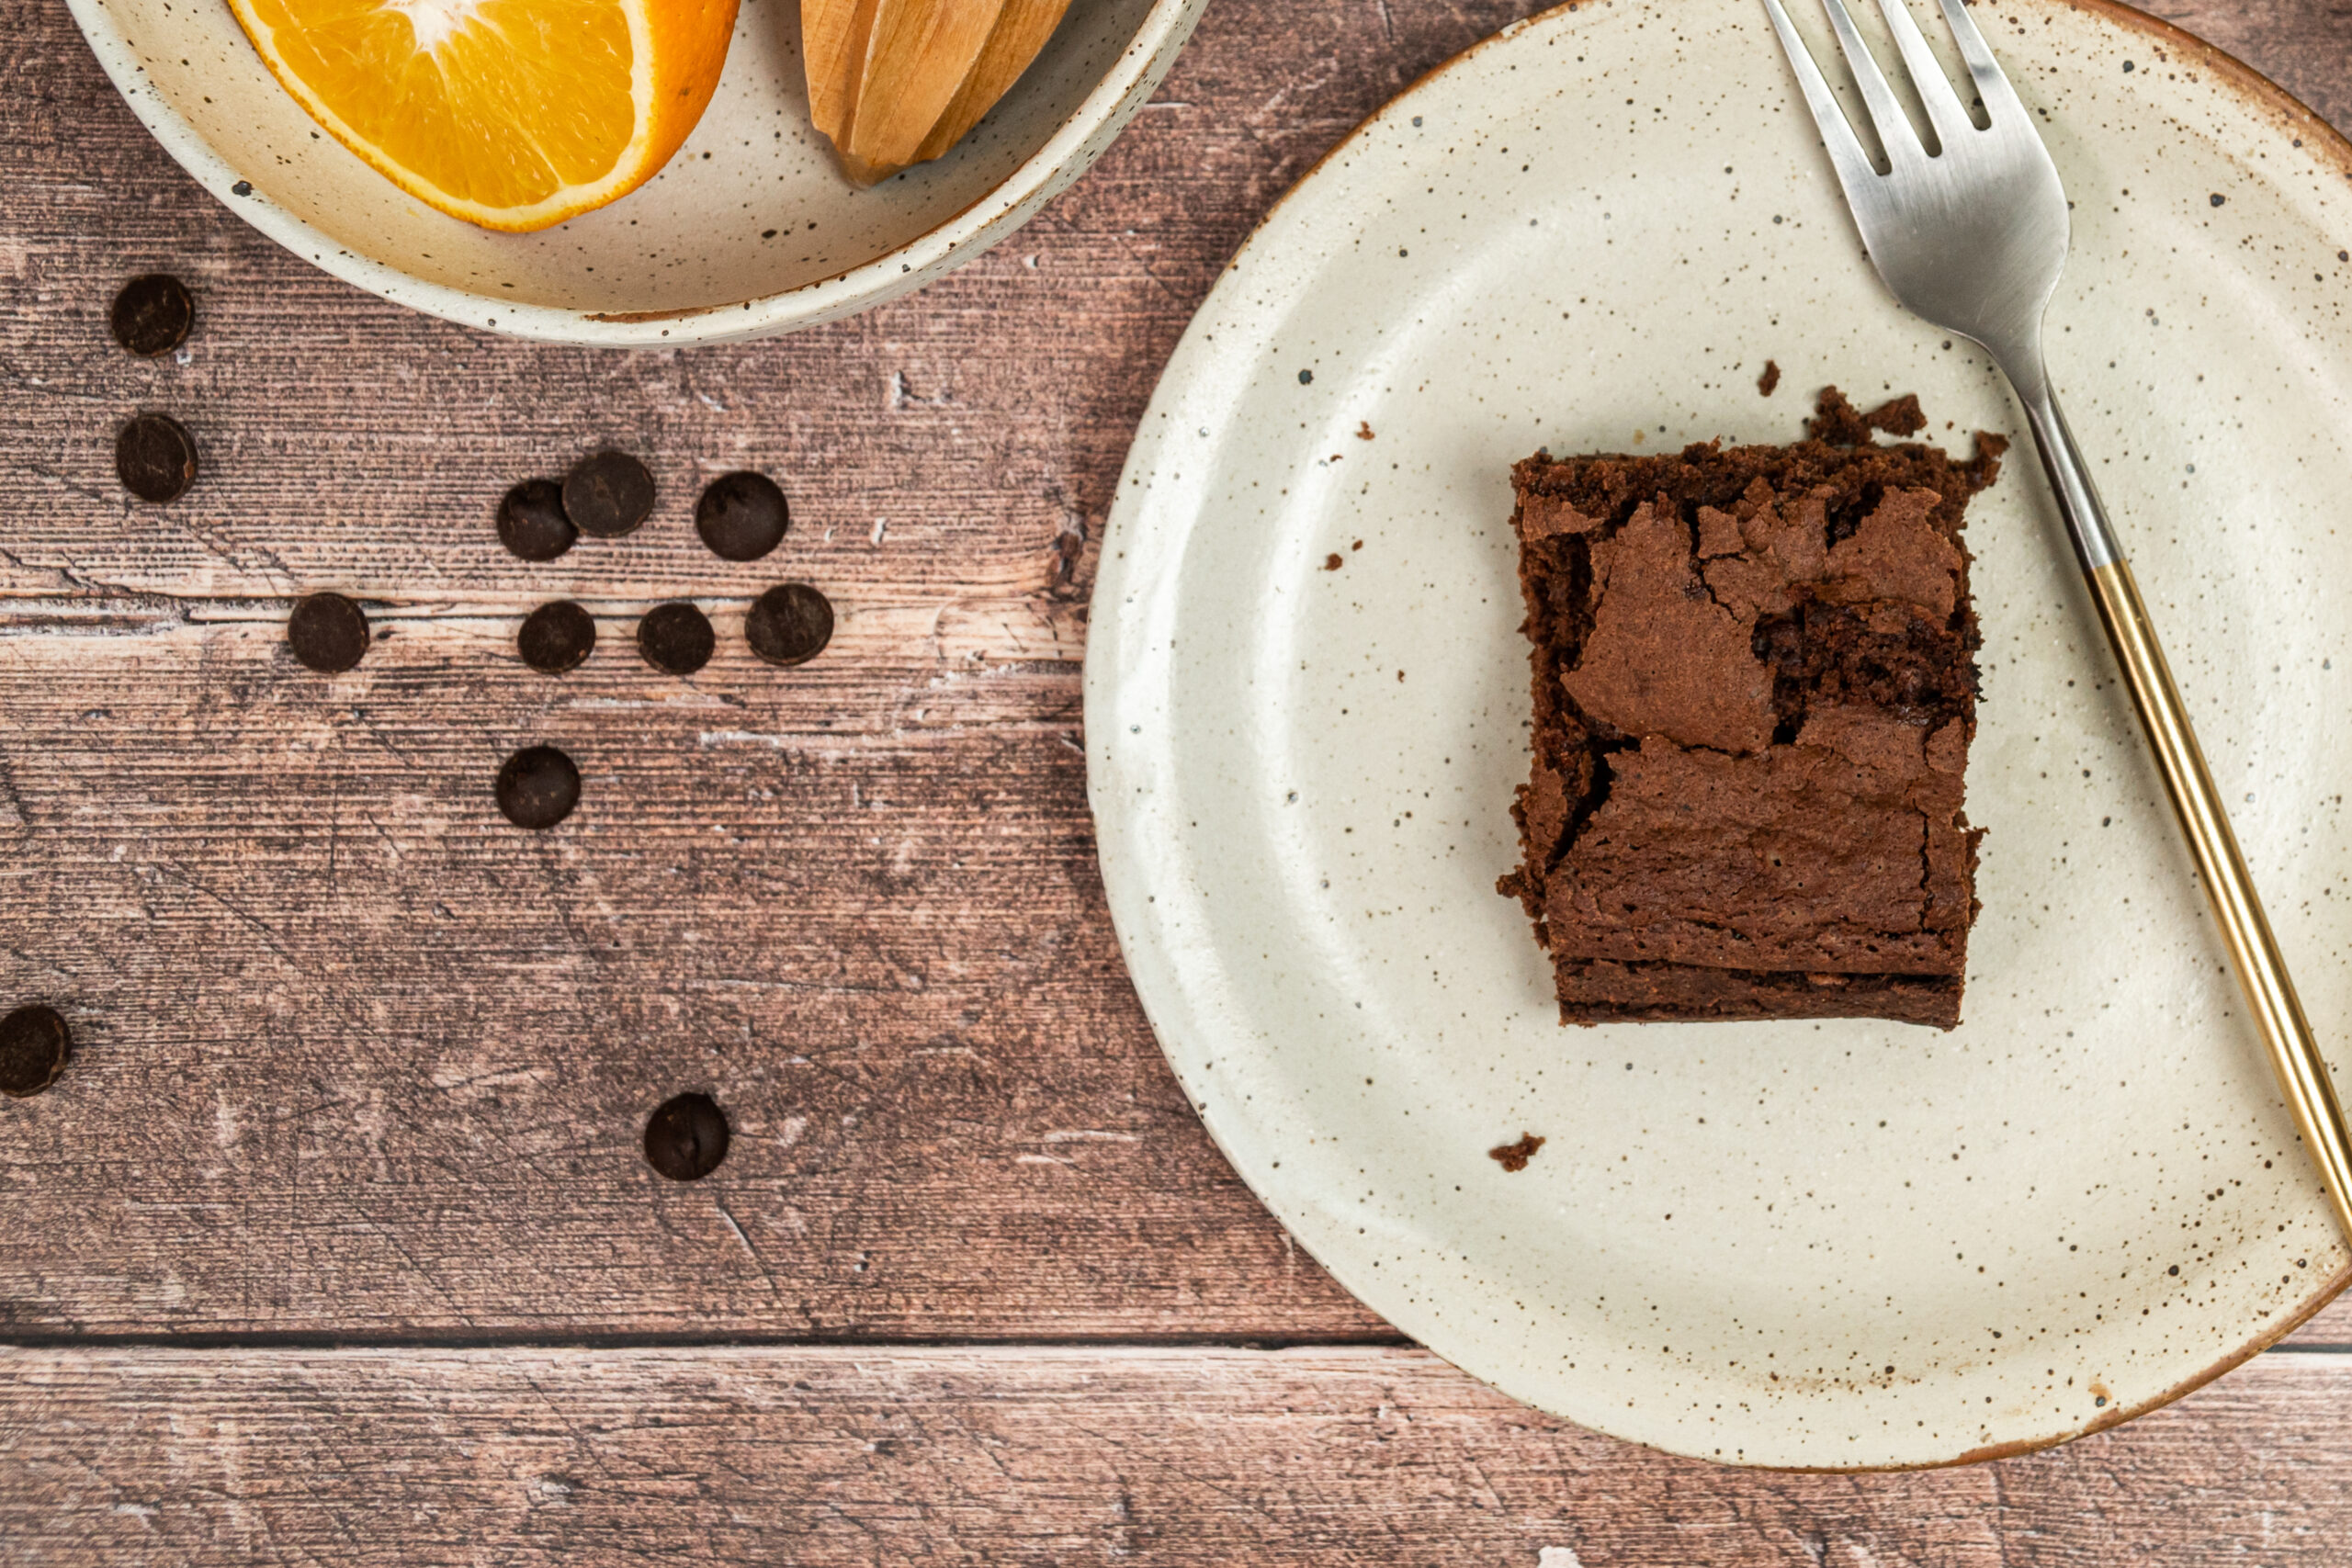 milk chocolate brownie on a plate with a fork